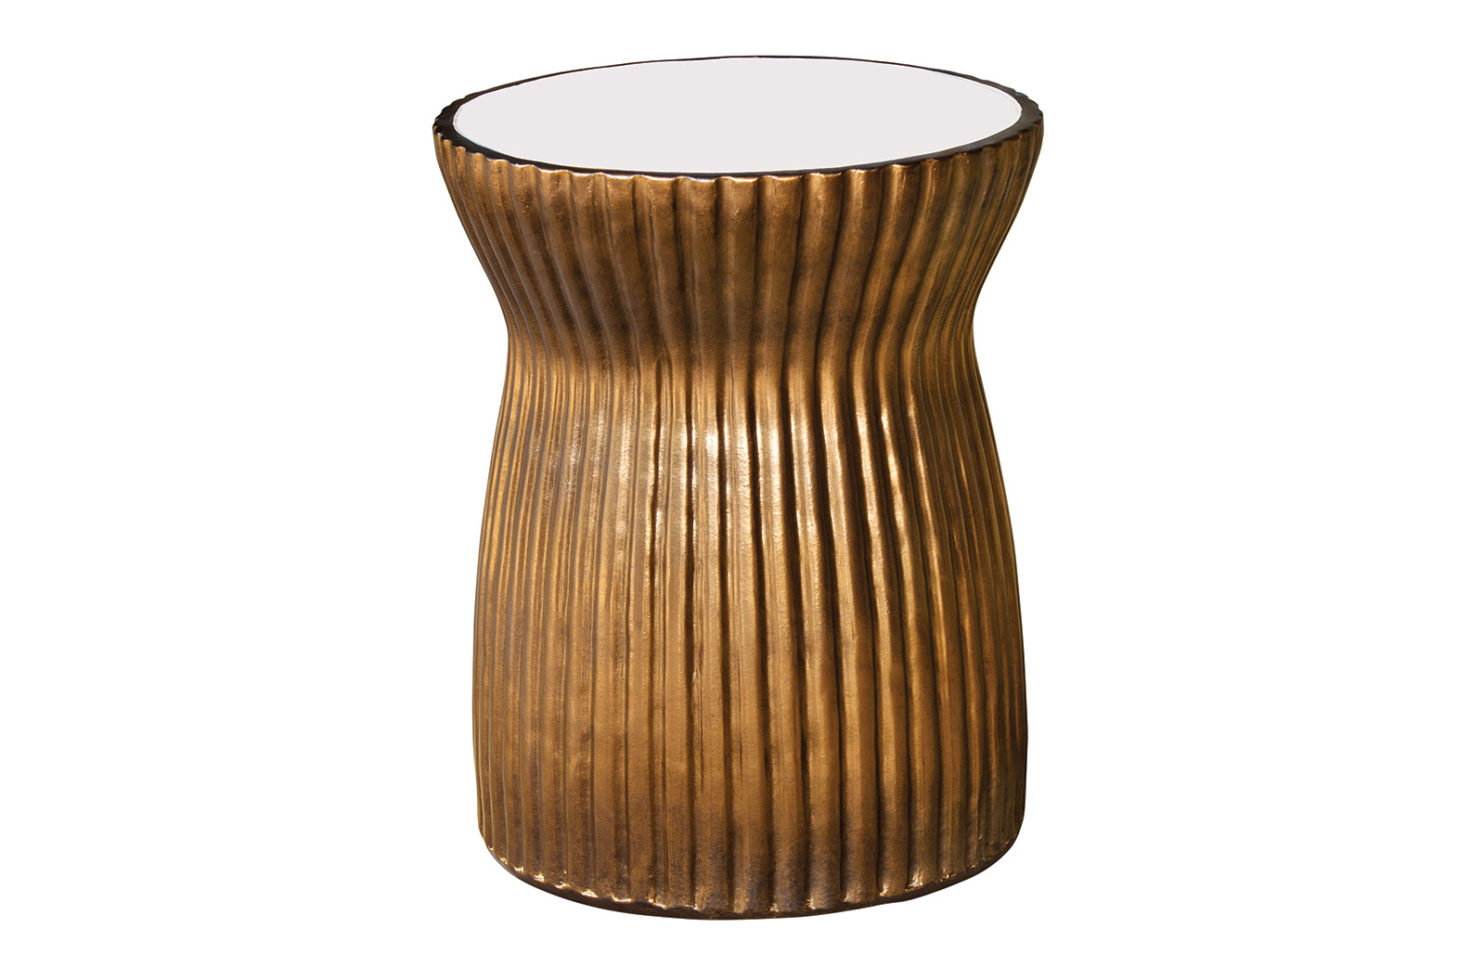 Ceramic ridged stool 308FT226P2SWG